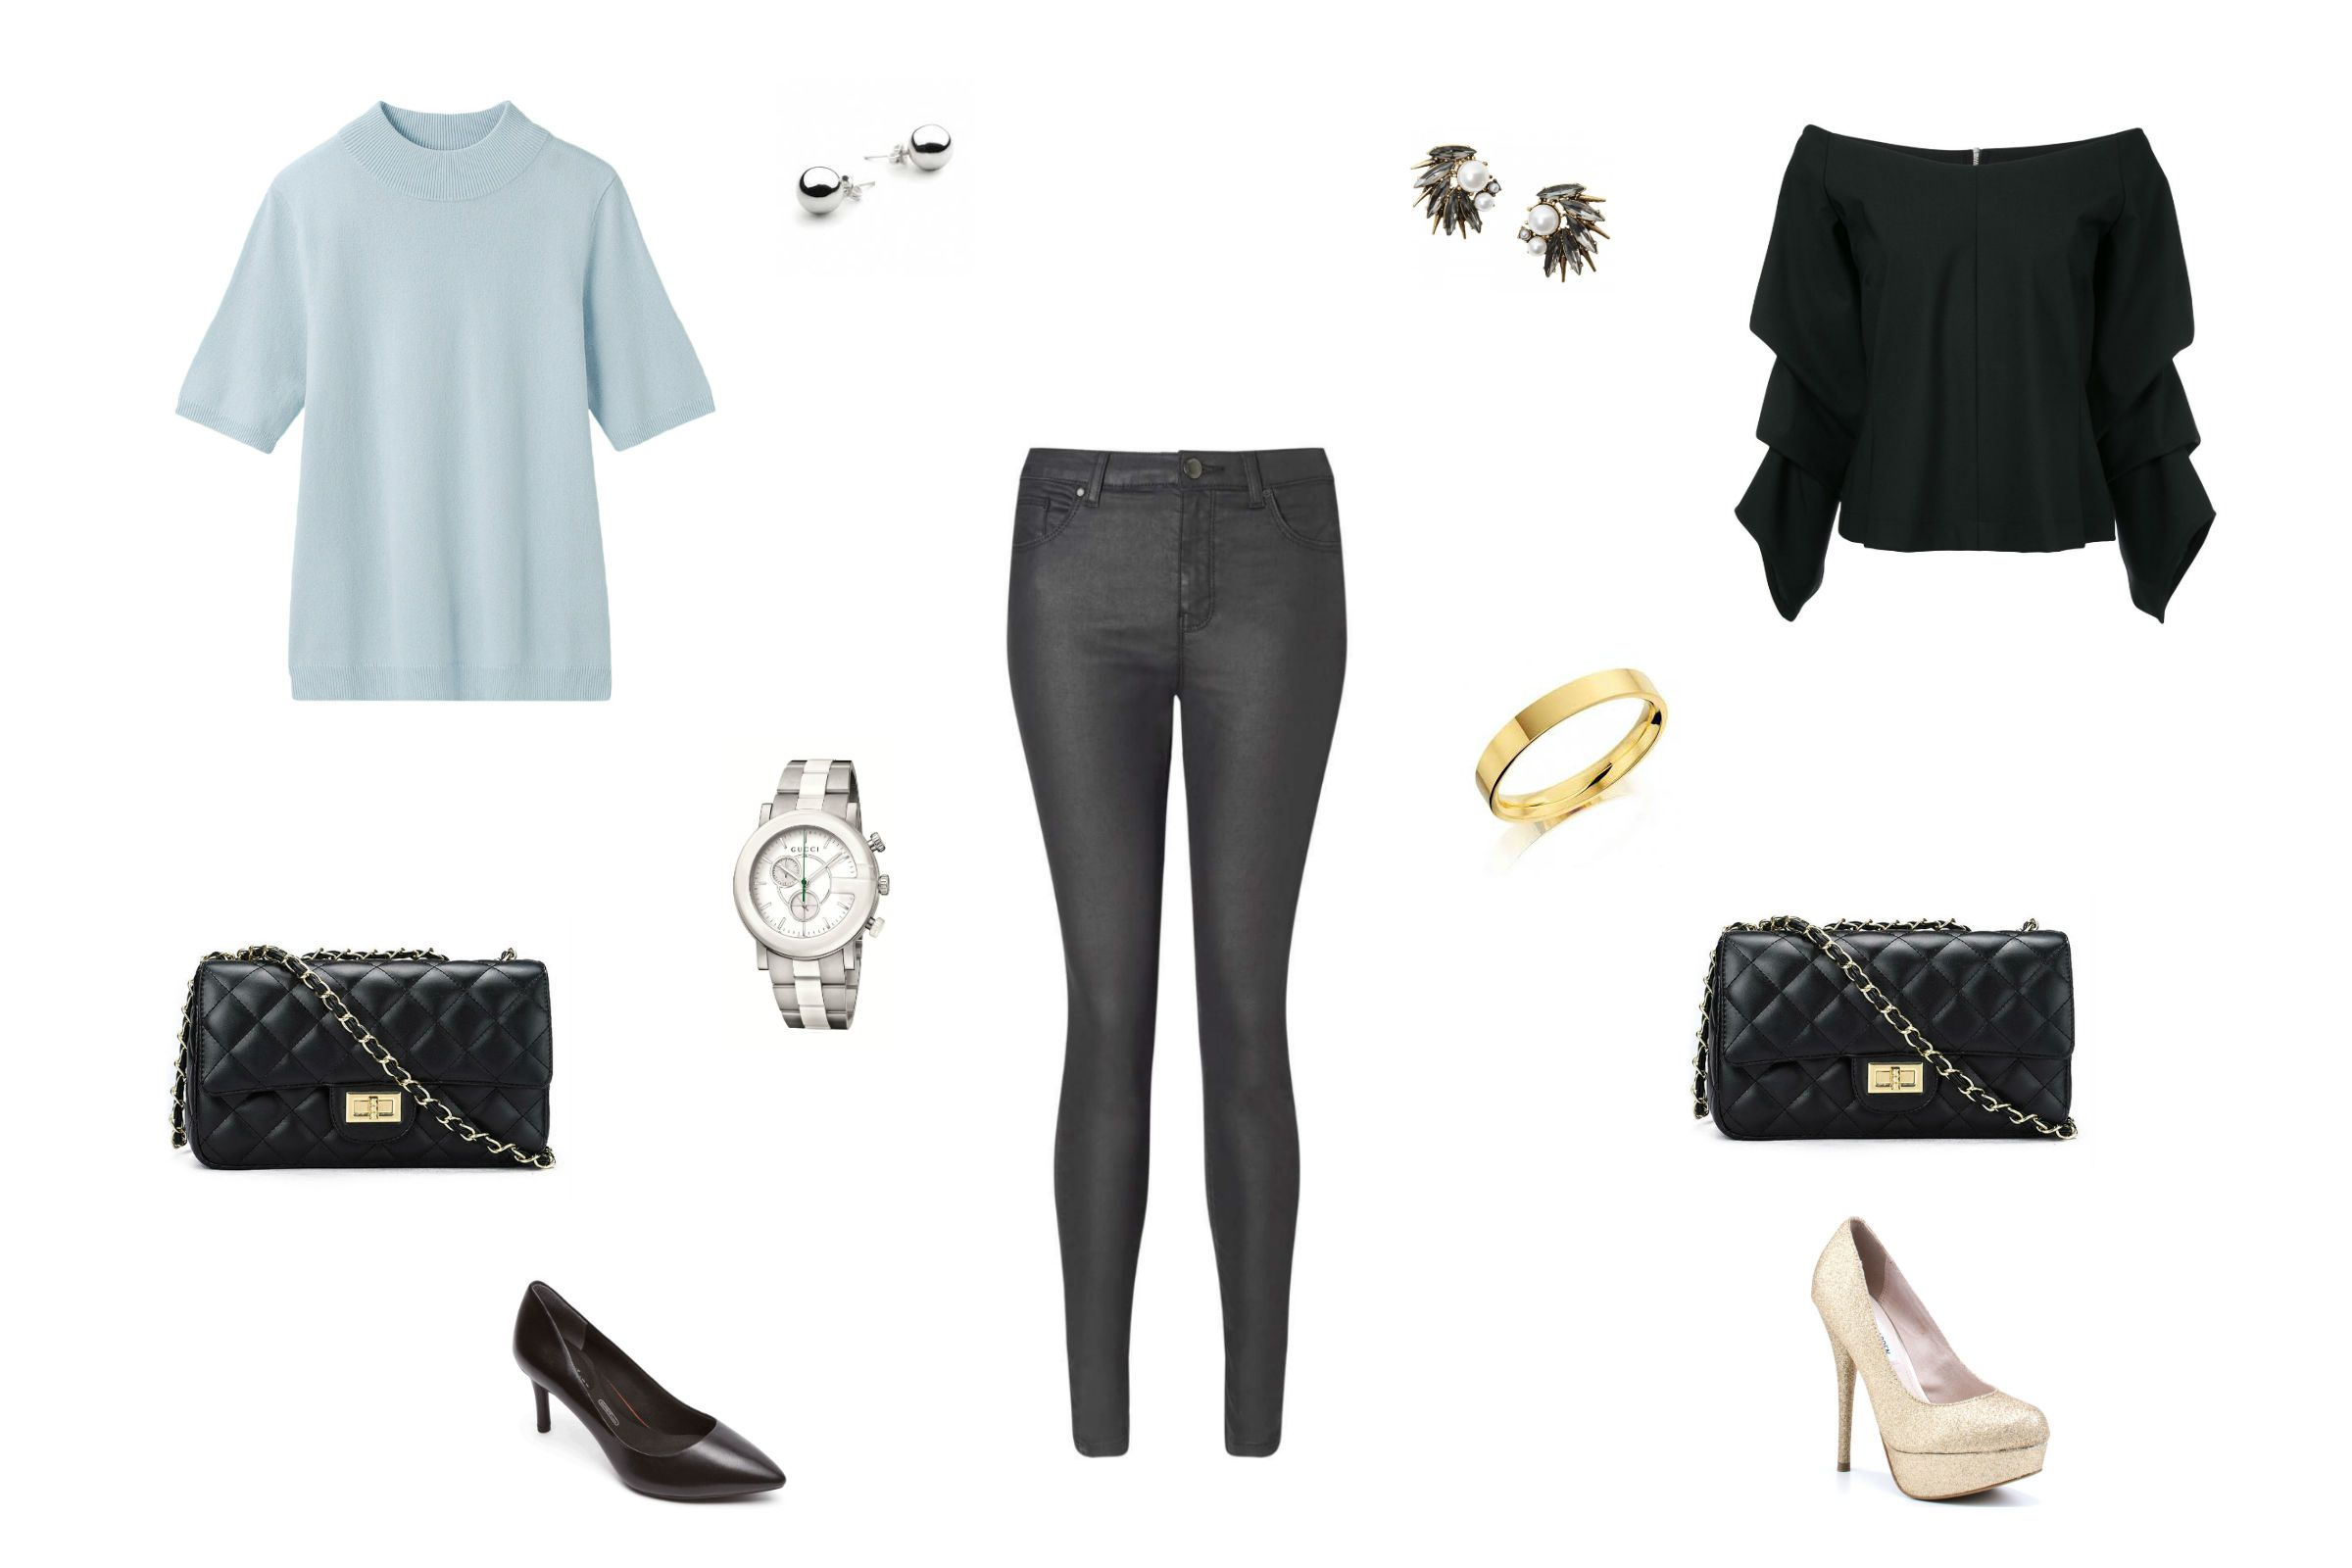 baa8593ff5 10 Ways to Dress Up Jeans for a Night Out